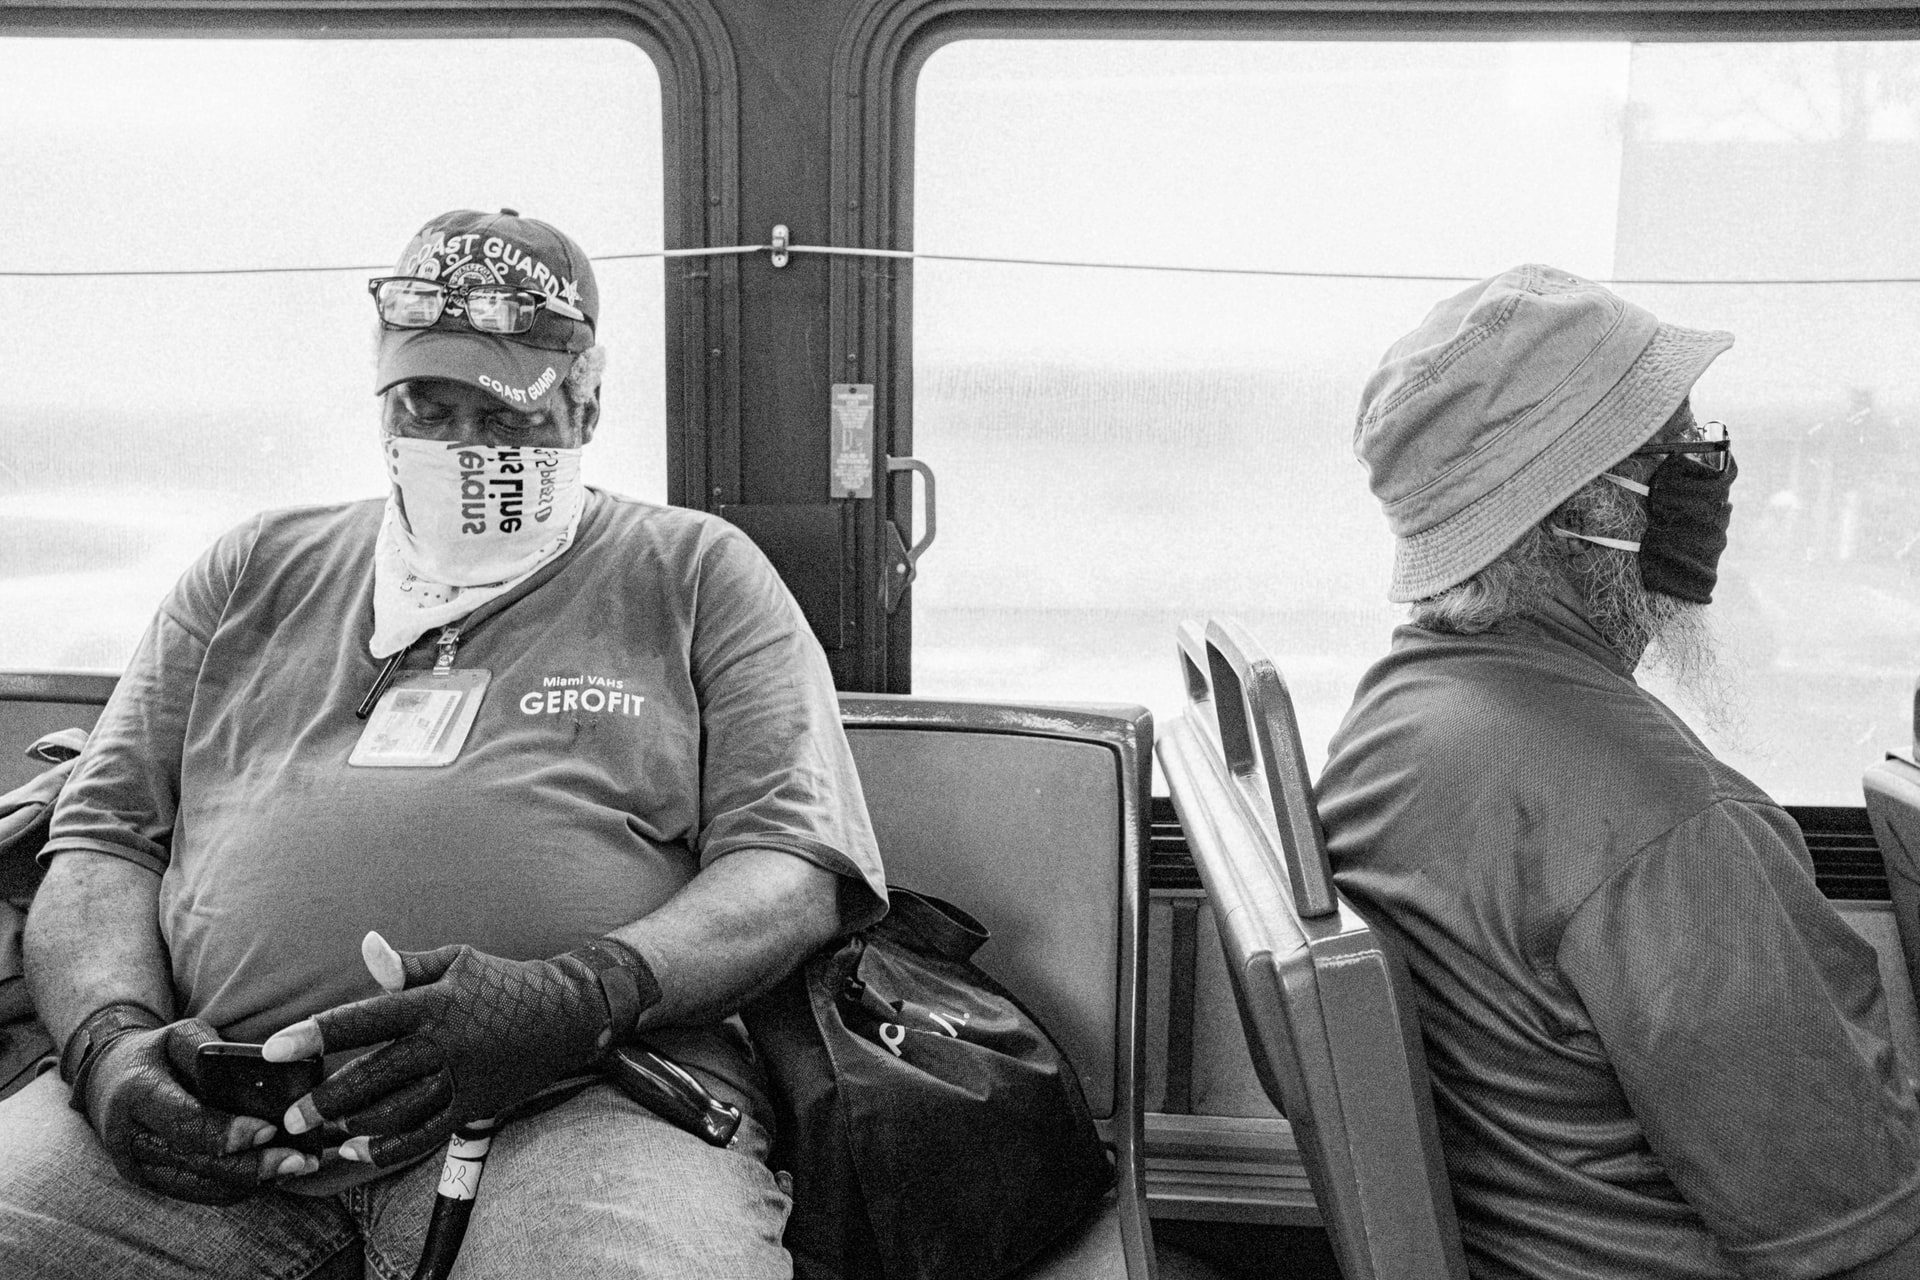 Transit riders wearing masks